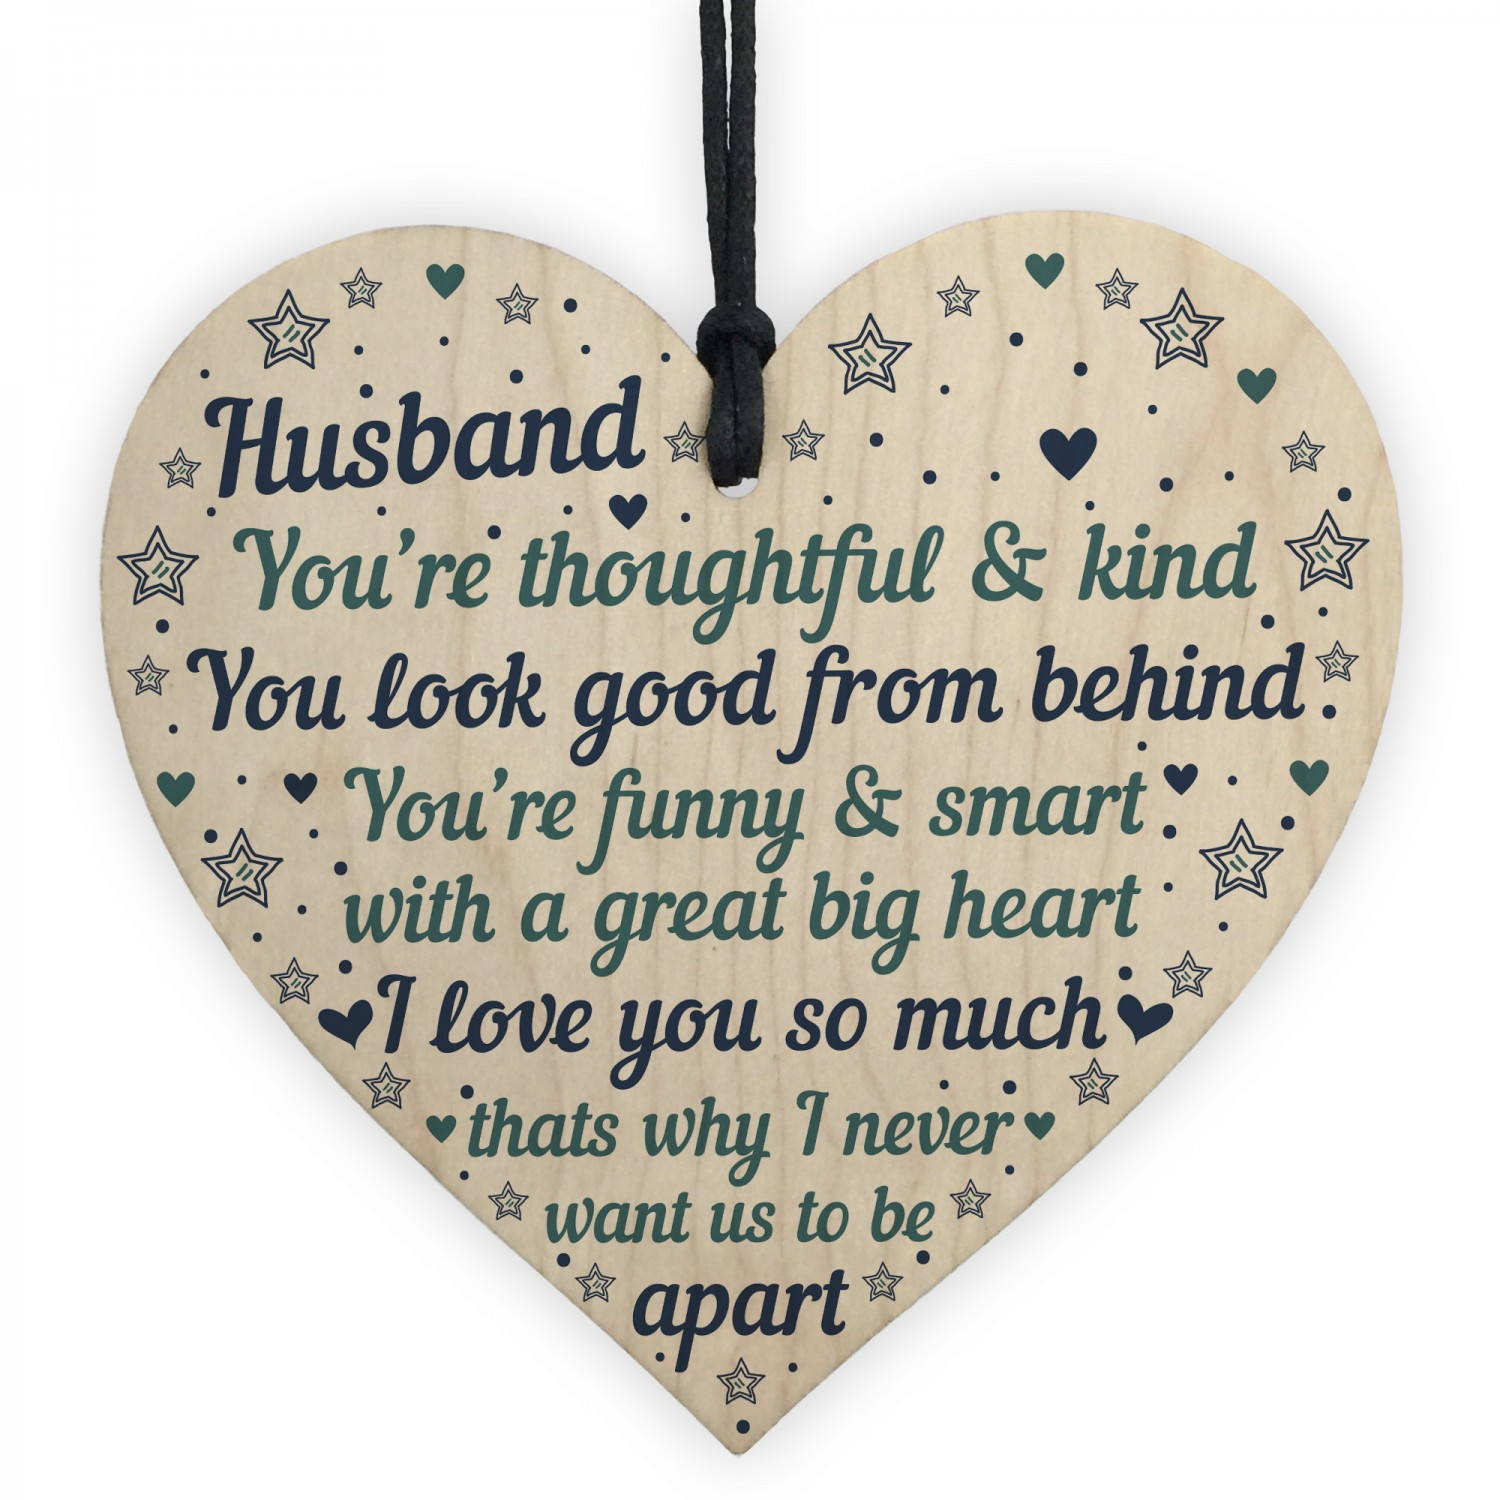 Husband Anniversary Cards Heart Birthday Gift THANK YOU